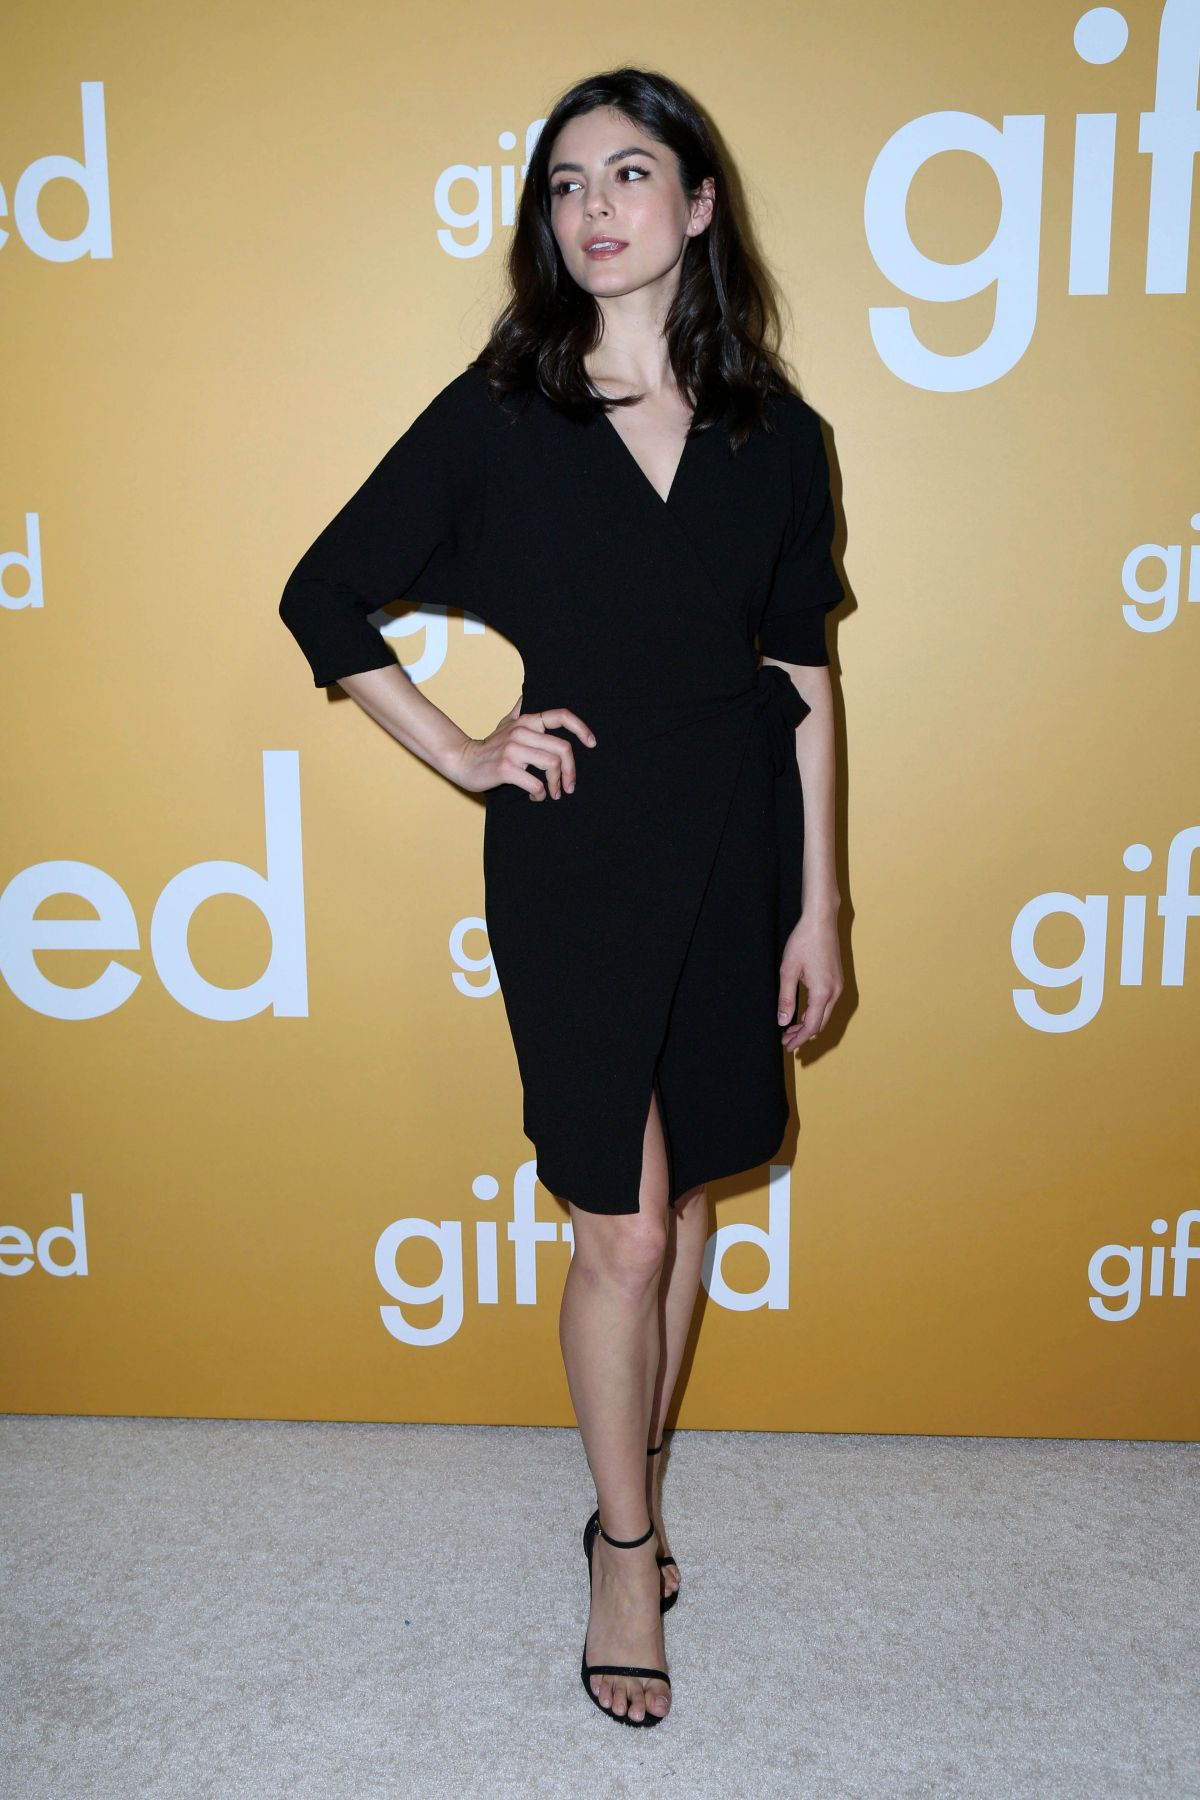 MONICA BARBARO at Gifted Premiere in Los Angeles 04/04/2017